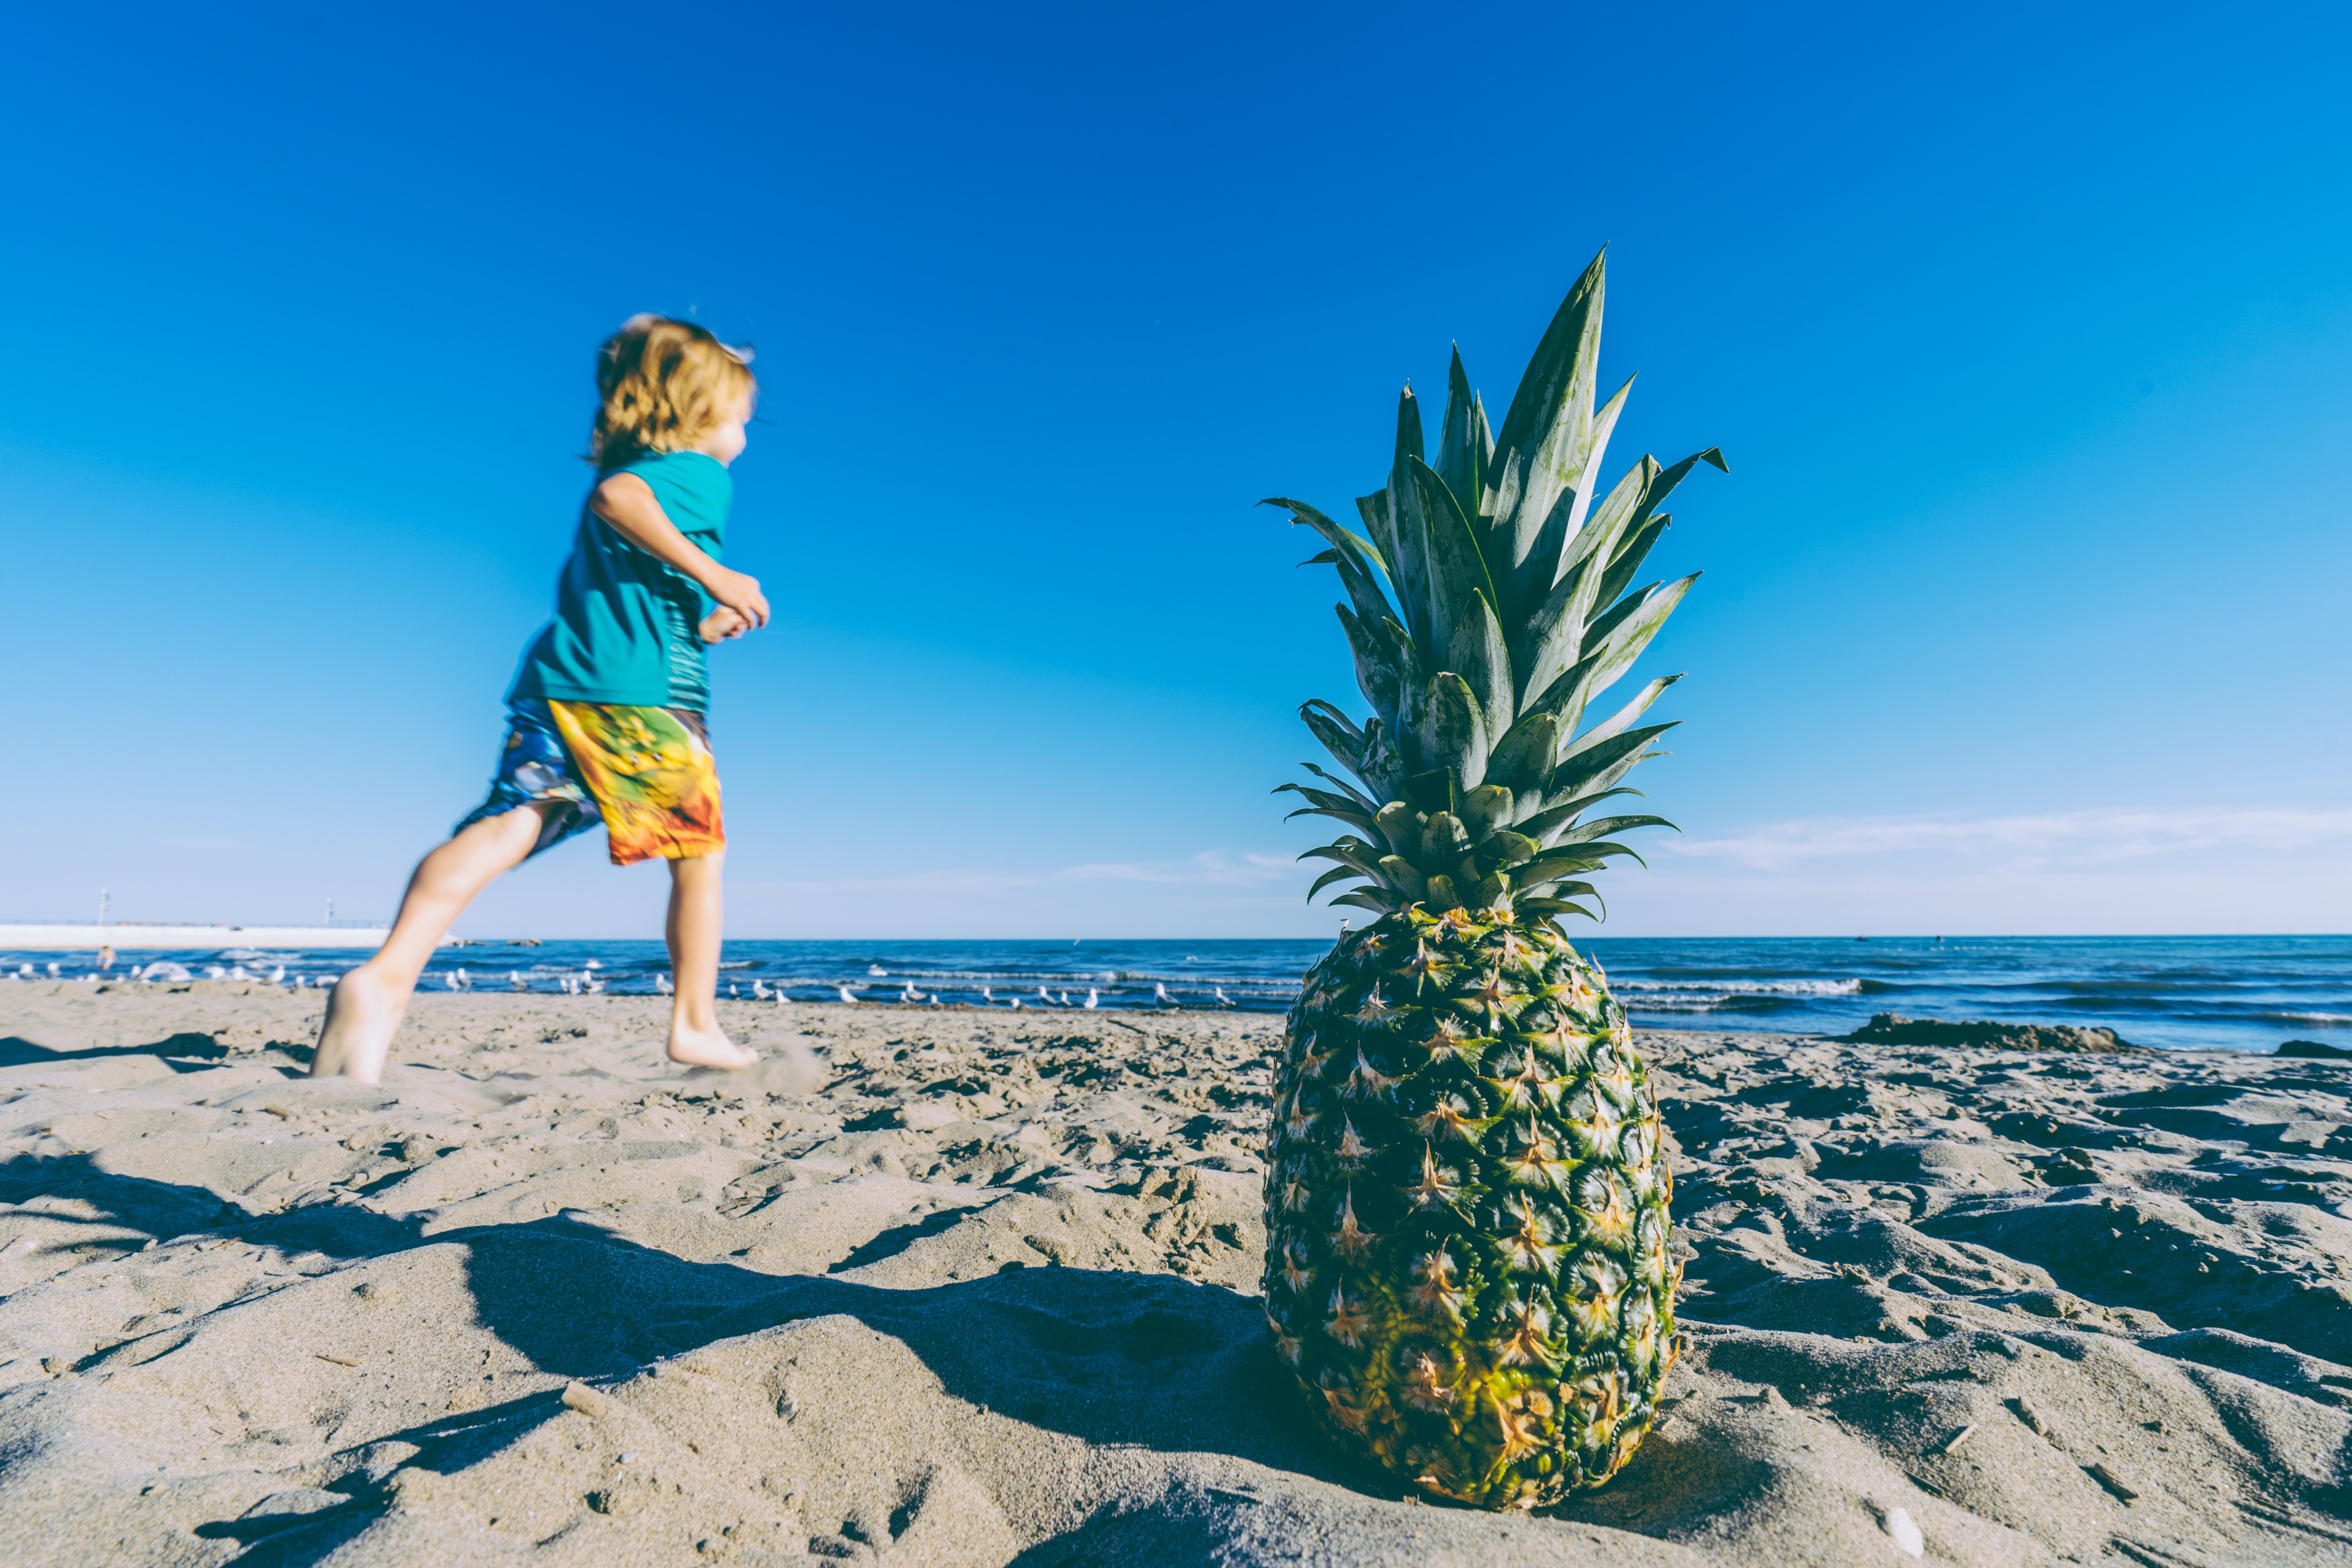 selective focus photo of green and yellow pineapple near running kid wearing blue T-shirt photo taken during daytime